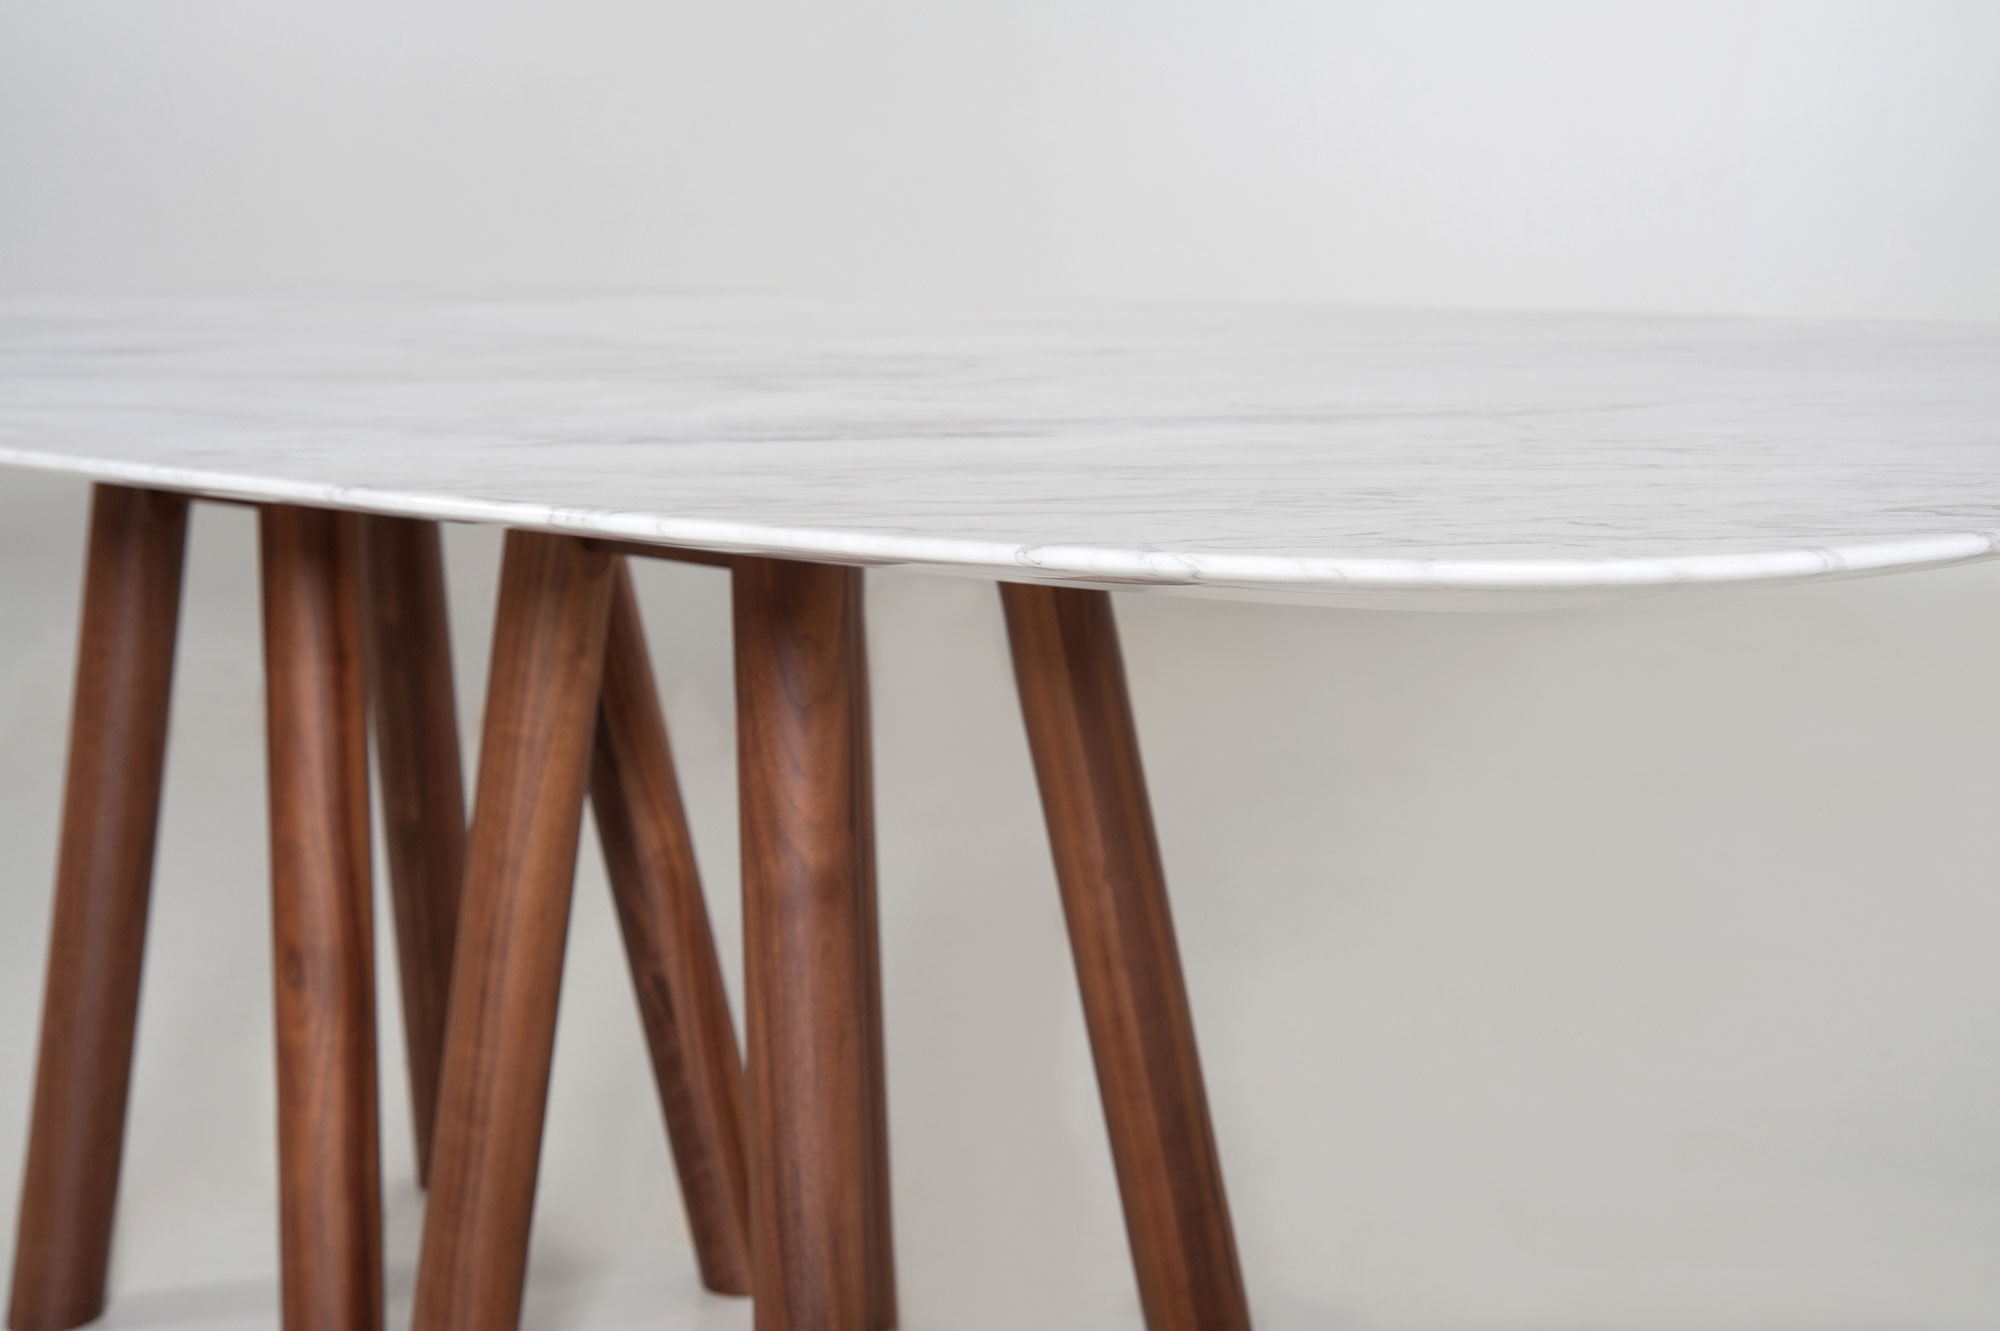 Mos-I-Ko 001 Fm Table - <p>Table in various sizes with shaped marble top - base<br /> with 8 legs in lacquered or solid wood.</p>  | Matter of Stuff